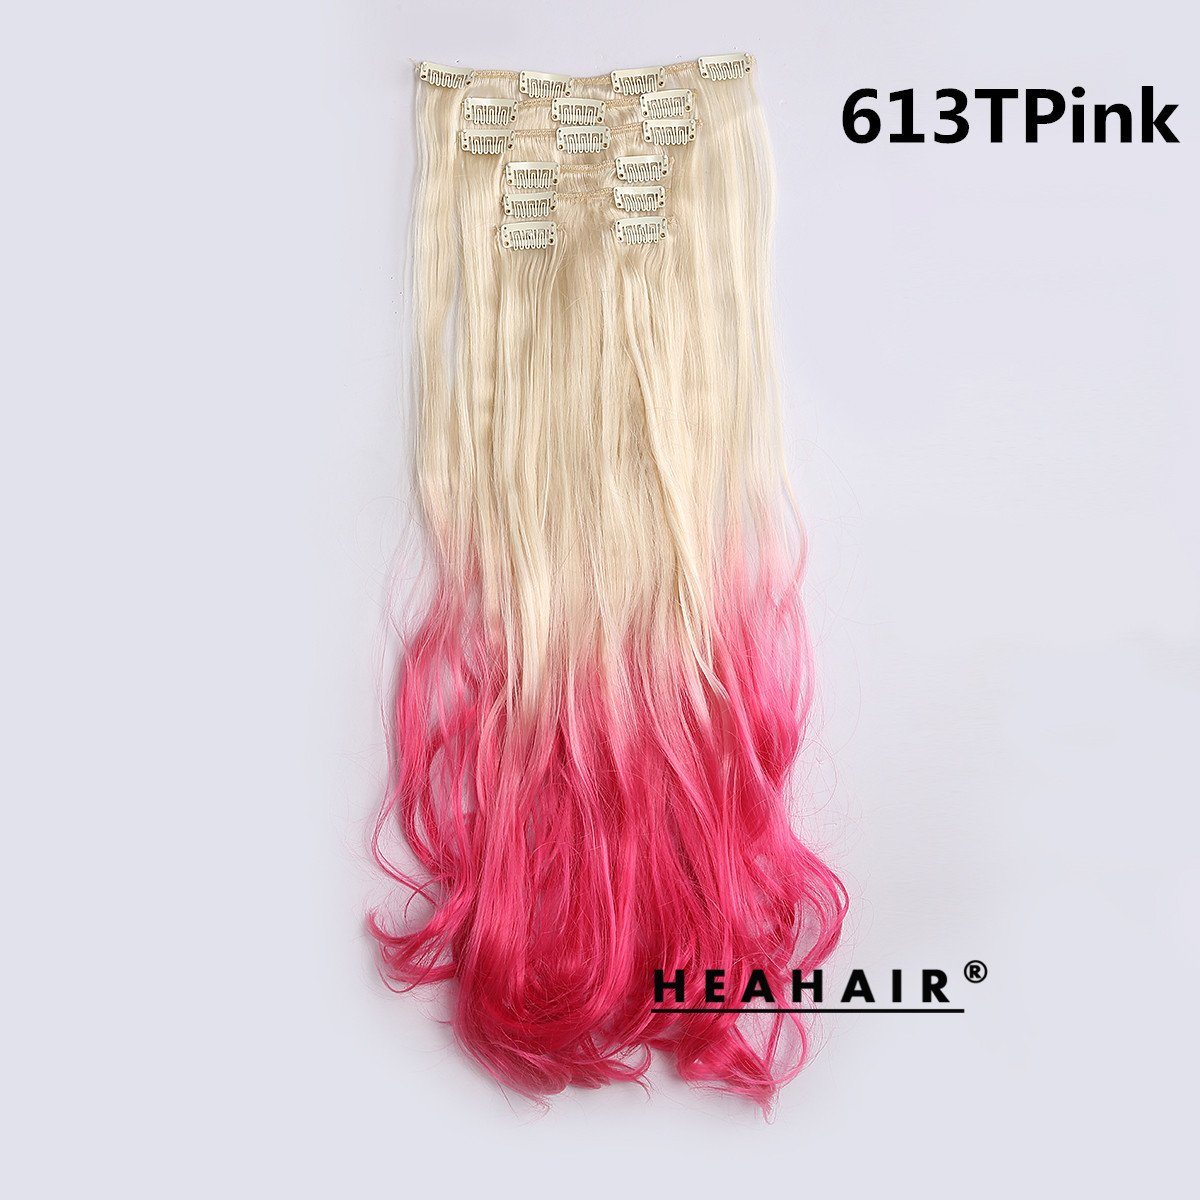 Amazon Heahair Light Blonde To 613t Pink Ombre Synthetic Curly